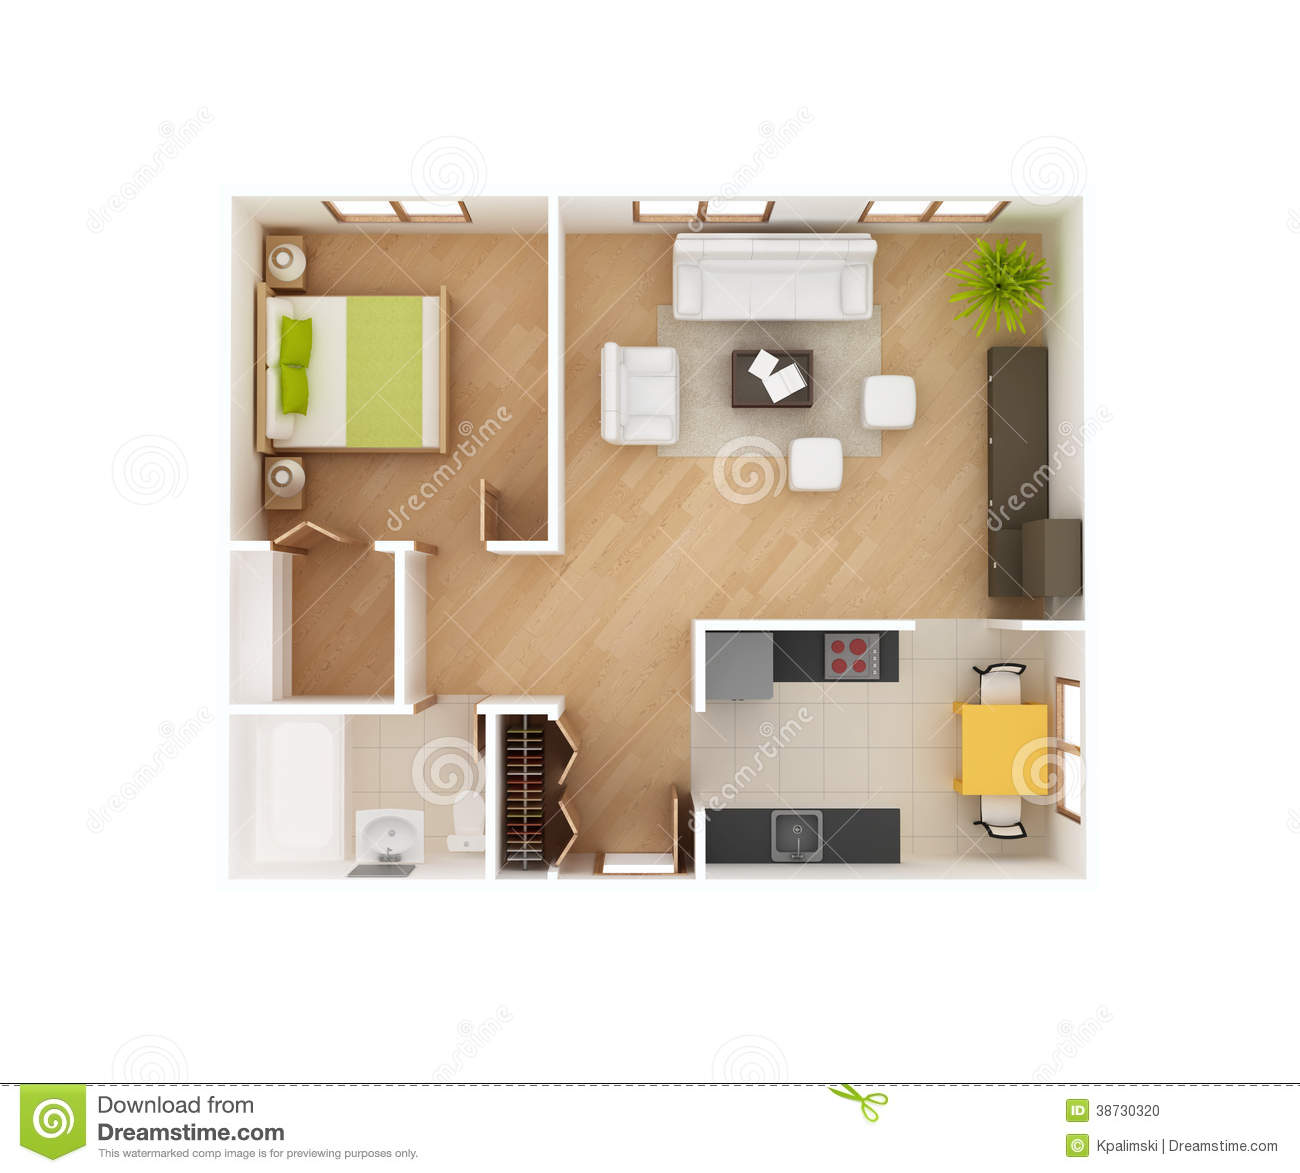 Basic 3d house floor plan top view stock illustration for 3d house floor plans